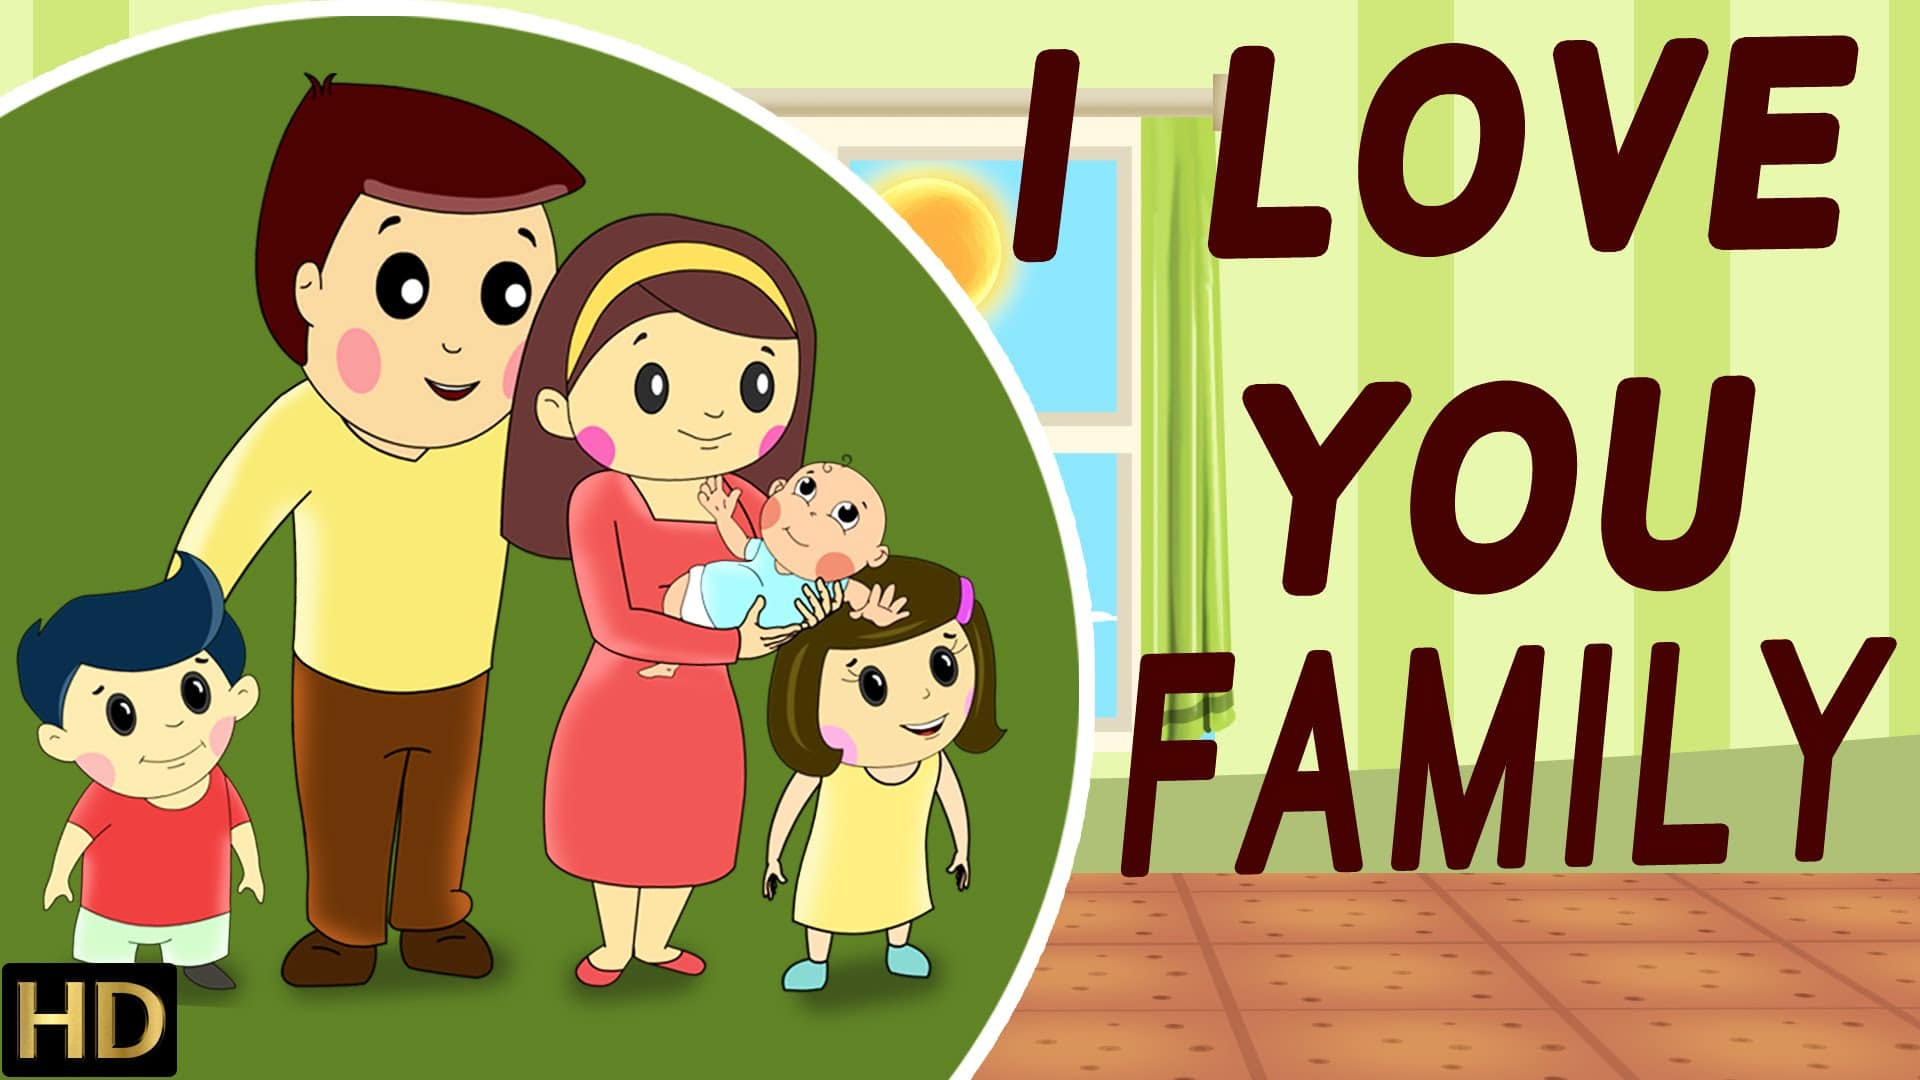 I Love You Family Hd Nursery Rhymes Por Kids Songs Shemaroo Place 4